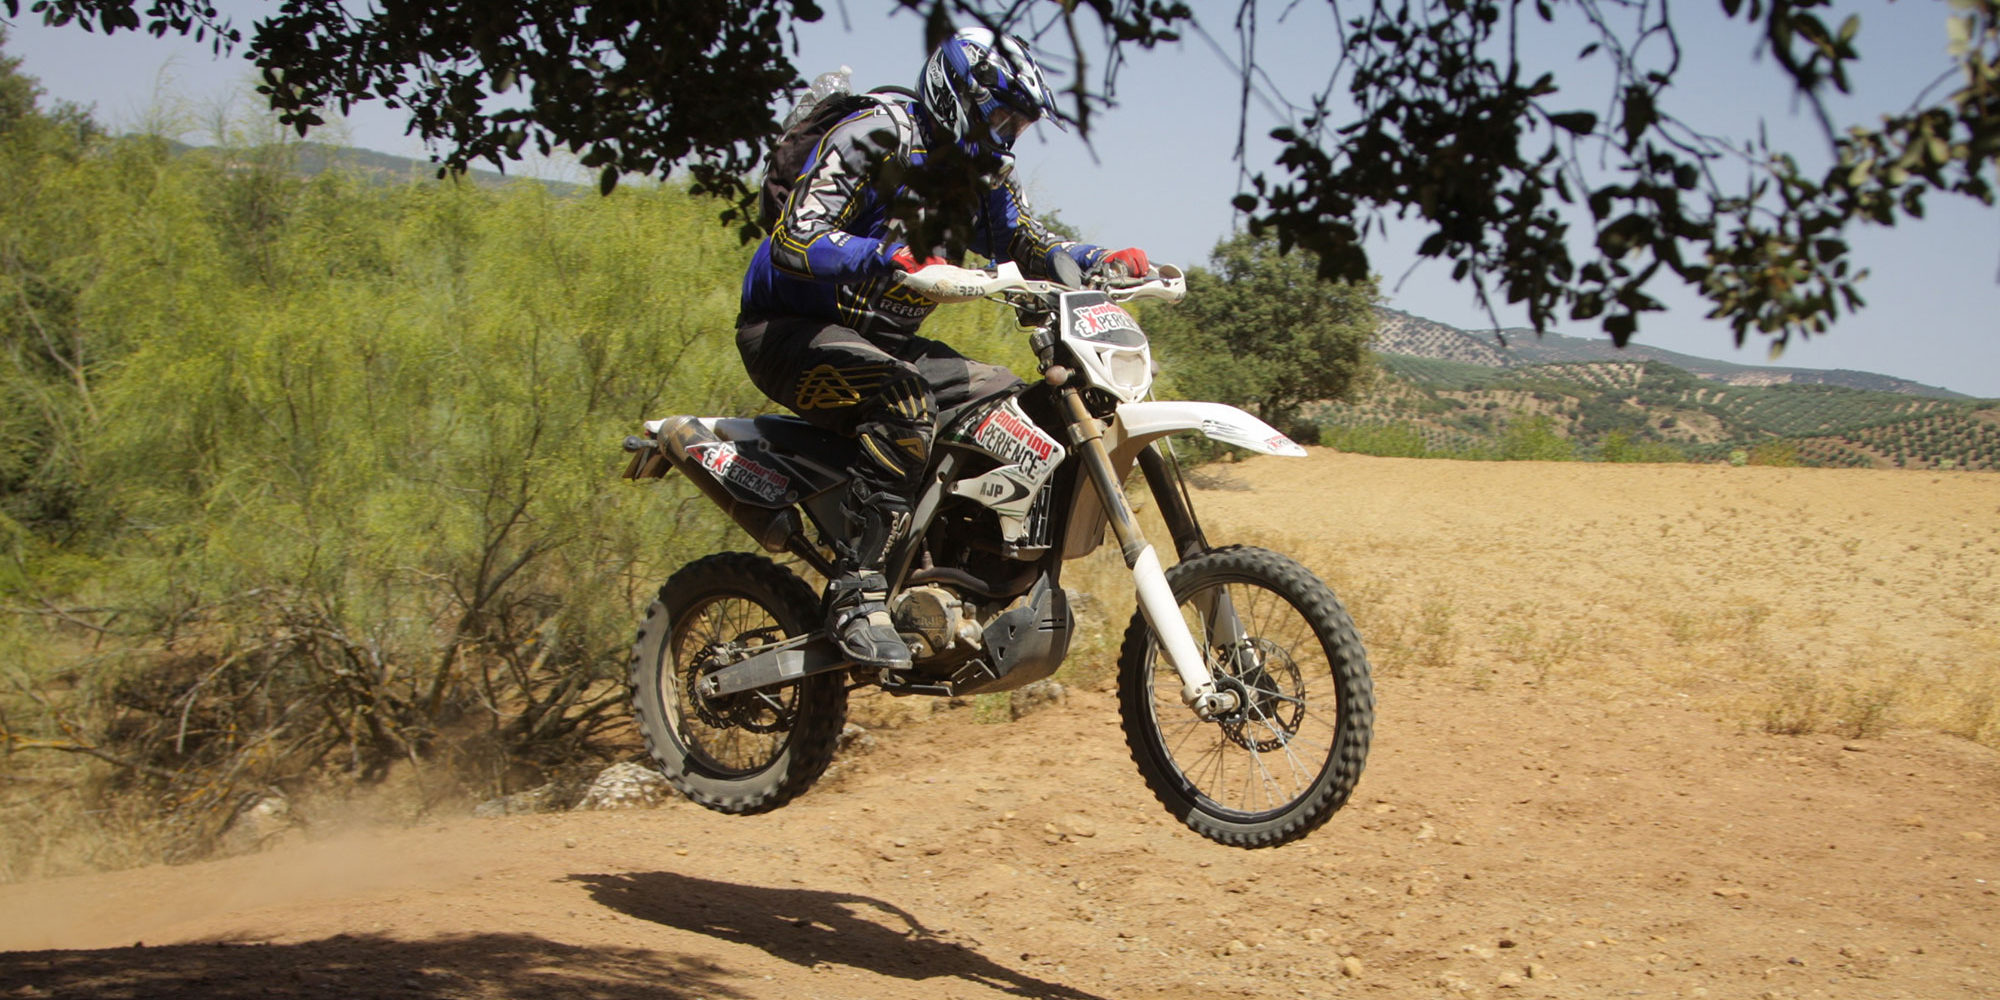 off-road trail riding Motorcycle day tours and excursions near Torremolinos, Benalmadina and Malaga